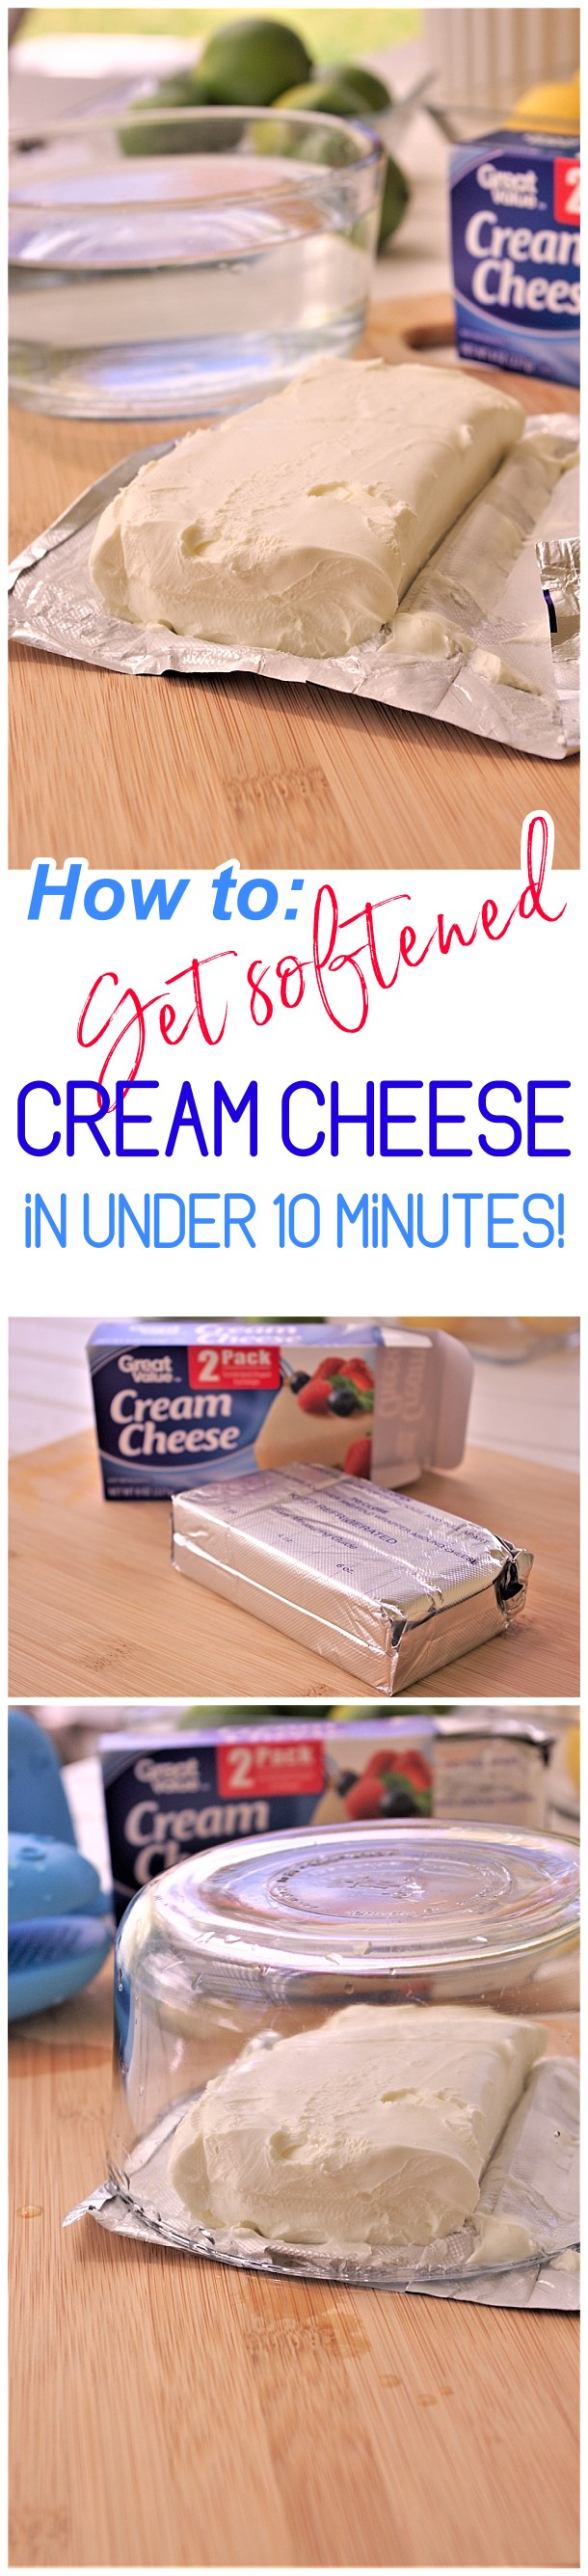 Clever Baking Hack - How to Get Softened Cream Cheese Not Melted in Under 10 Minutes EASY - Dreaming in DIY